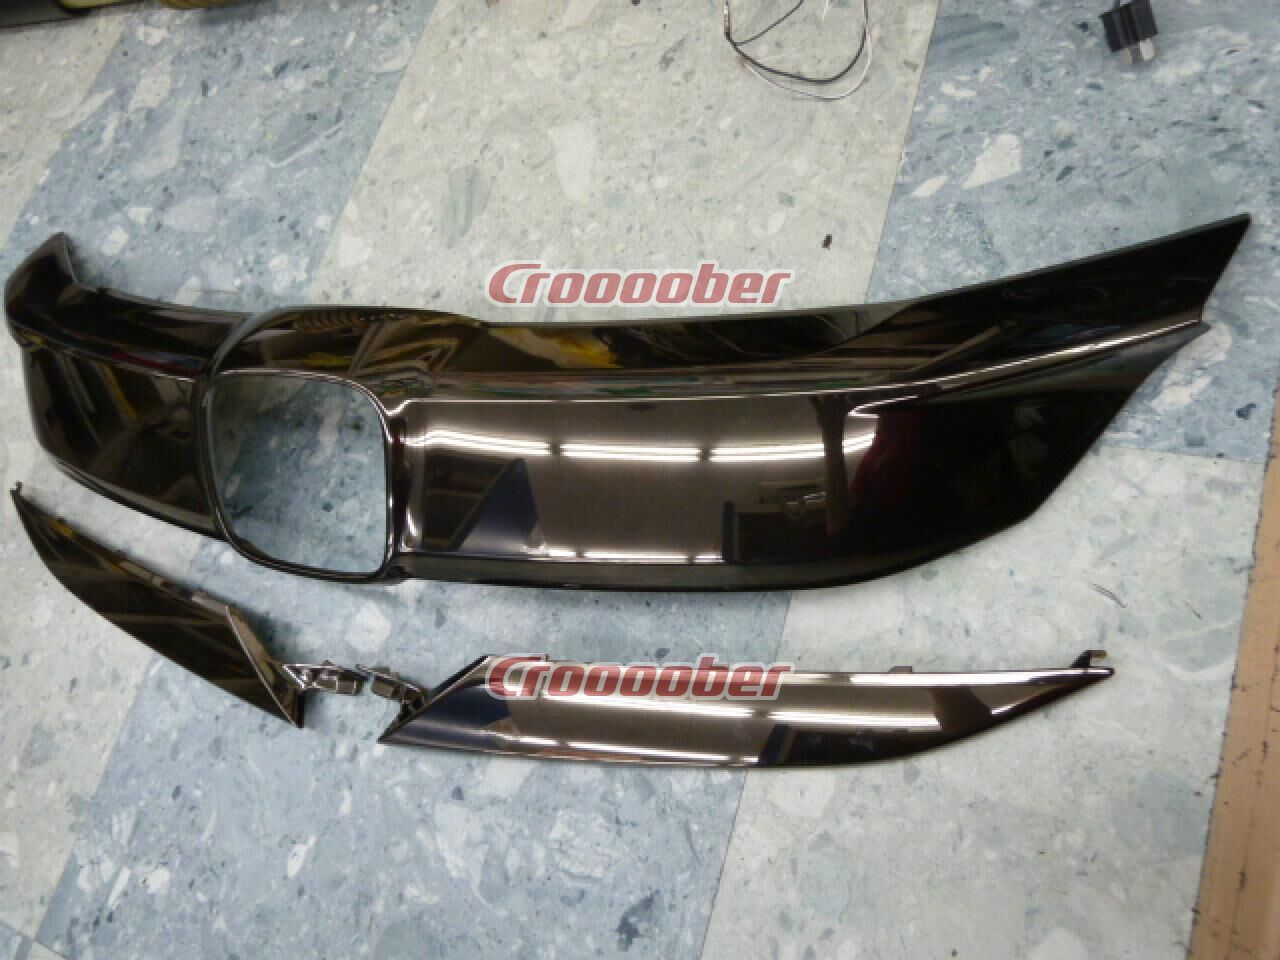 Honda Genuine Front Grille 71122 - - - 1/71168 - - - 1/7116- T 7 A - J 0- M  1 / RU 4 Wesel Hybrid RS Later 3/3